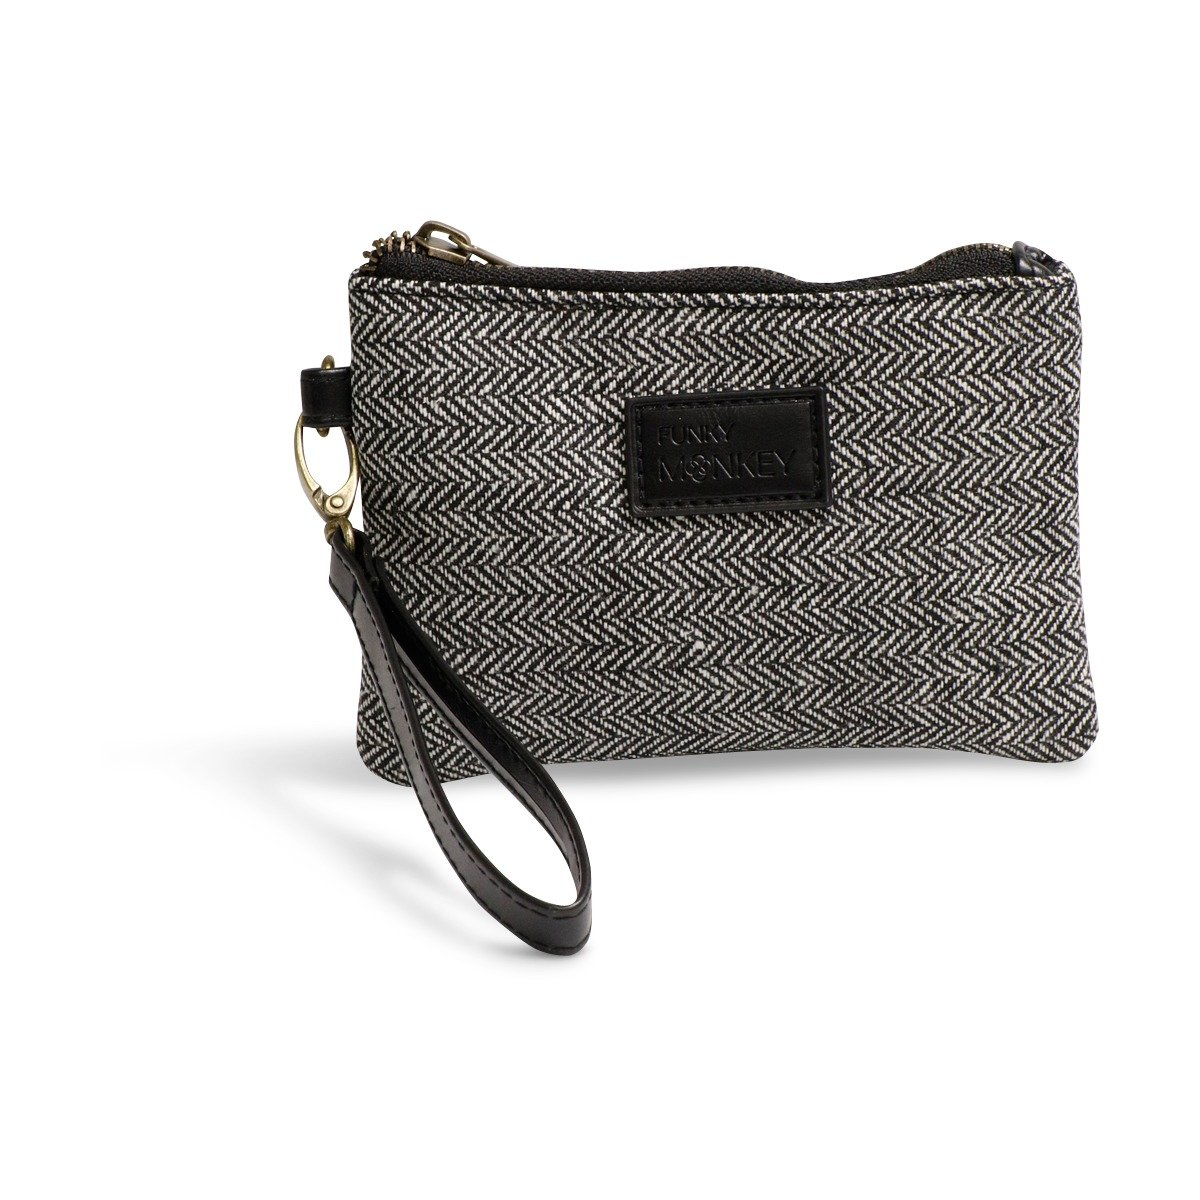 {Anna Collection} Wristlet Wallet Clutch Bag {small, medium, large}- Phone Purse Handbag - Size- Black & White Horizontal Herringbone Style - Funky Monkey Fashion (Small)